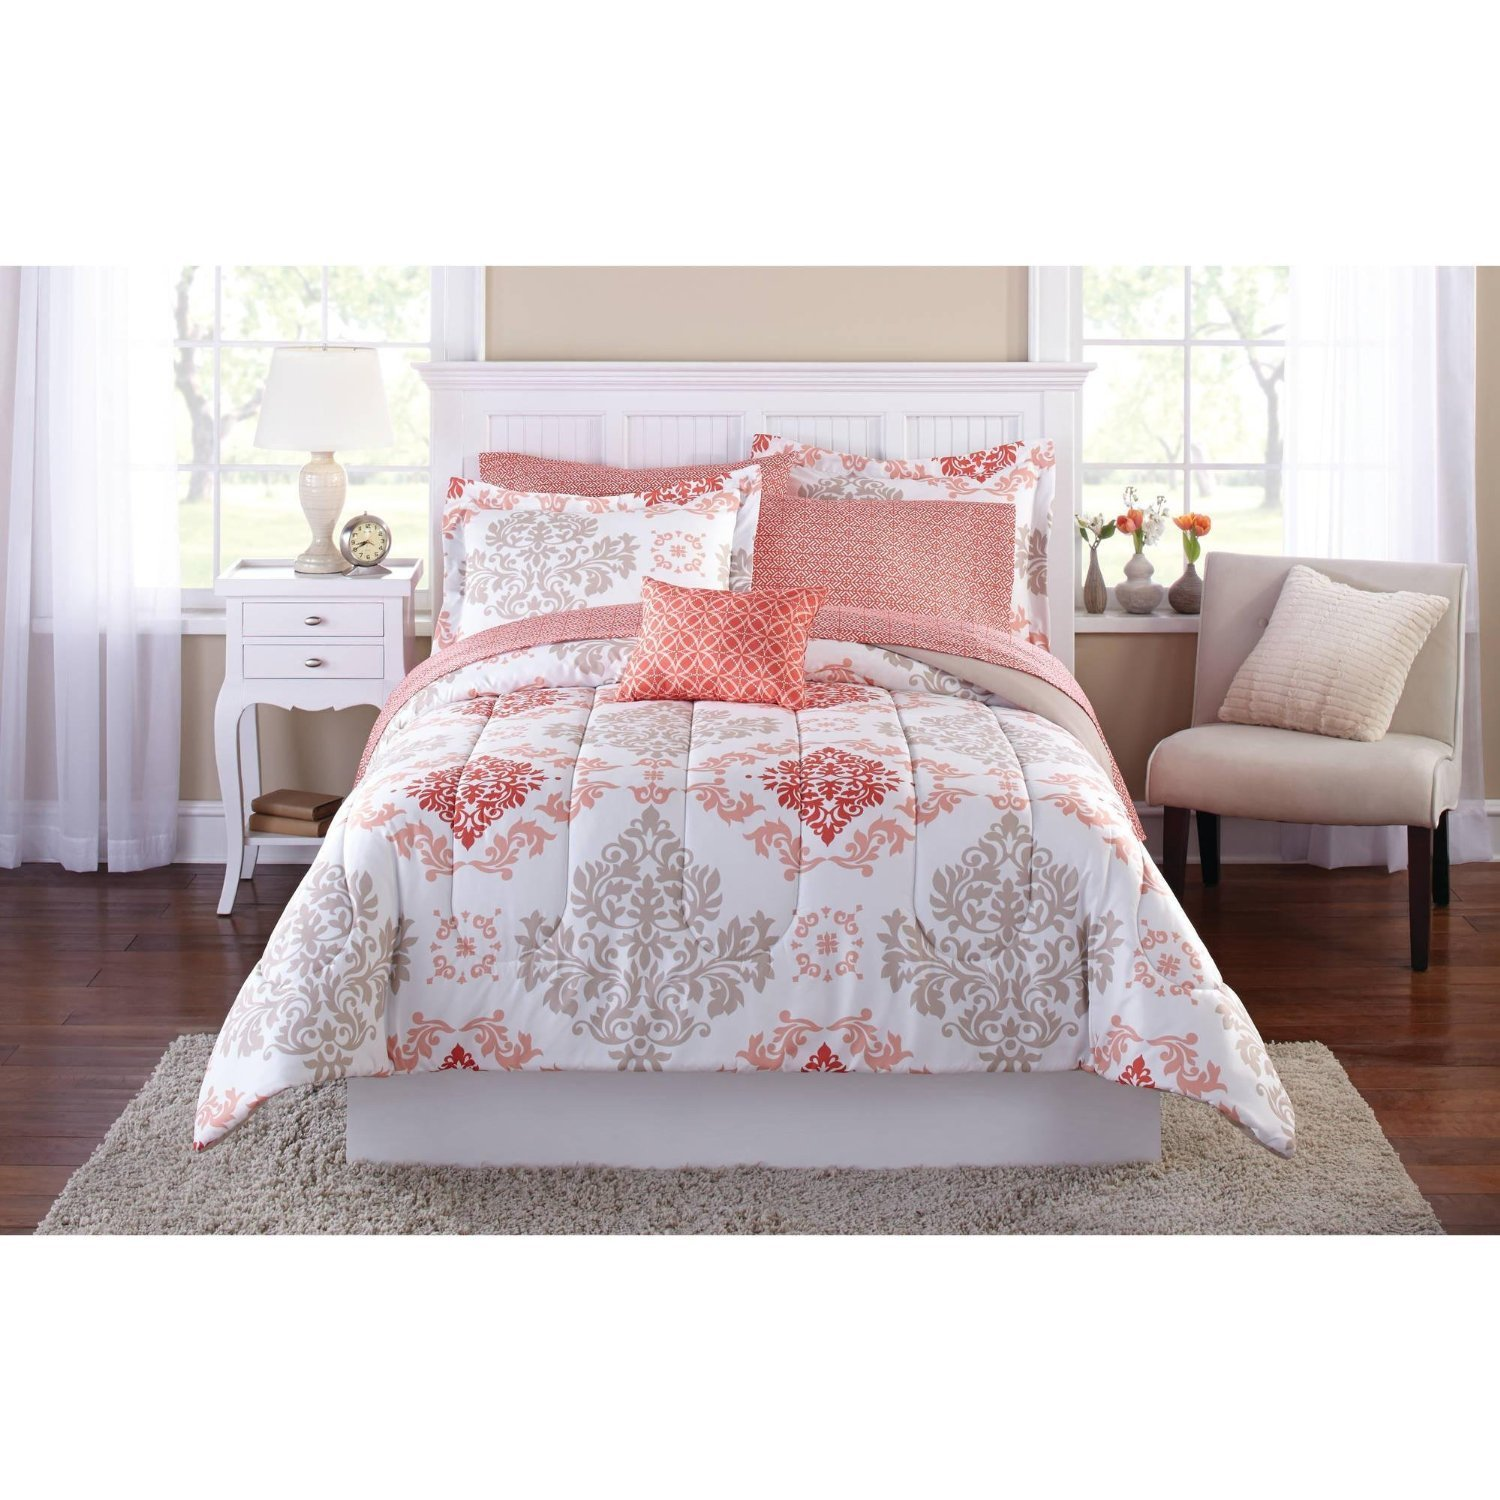 Bedroom Comforters Sets Teen Boys And Teen Girls Bedding Sets Ease Bedding With